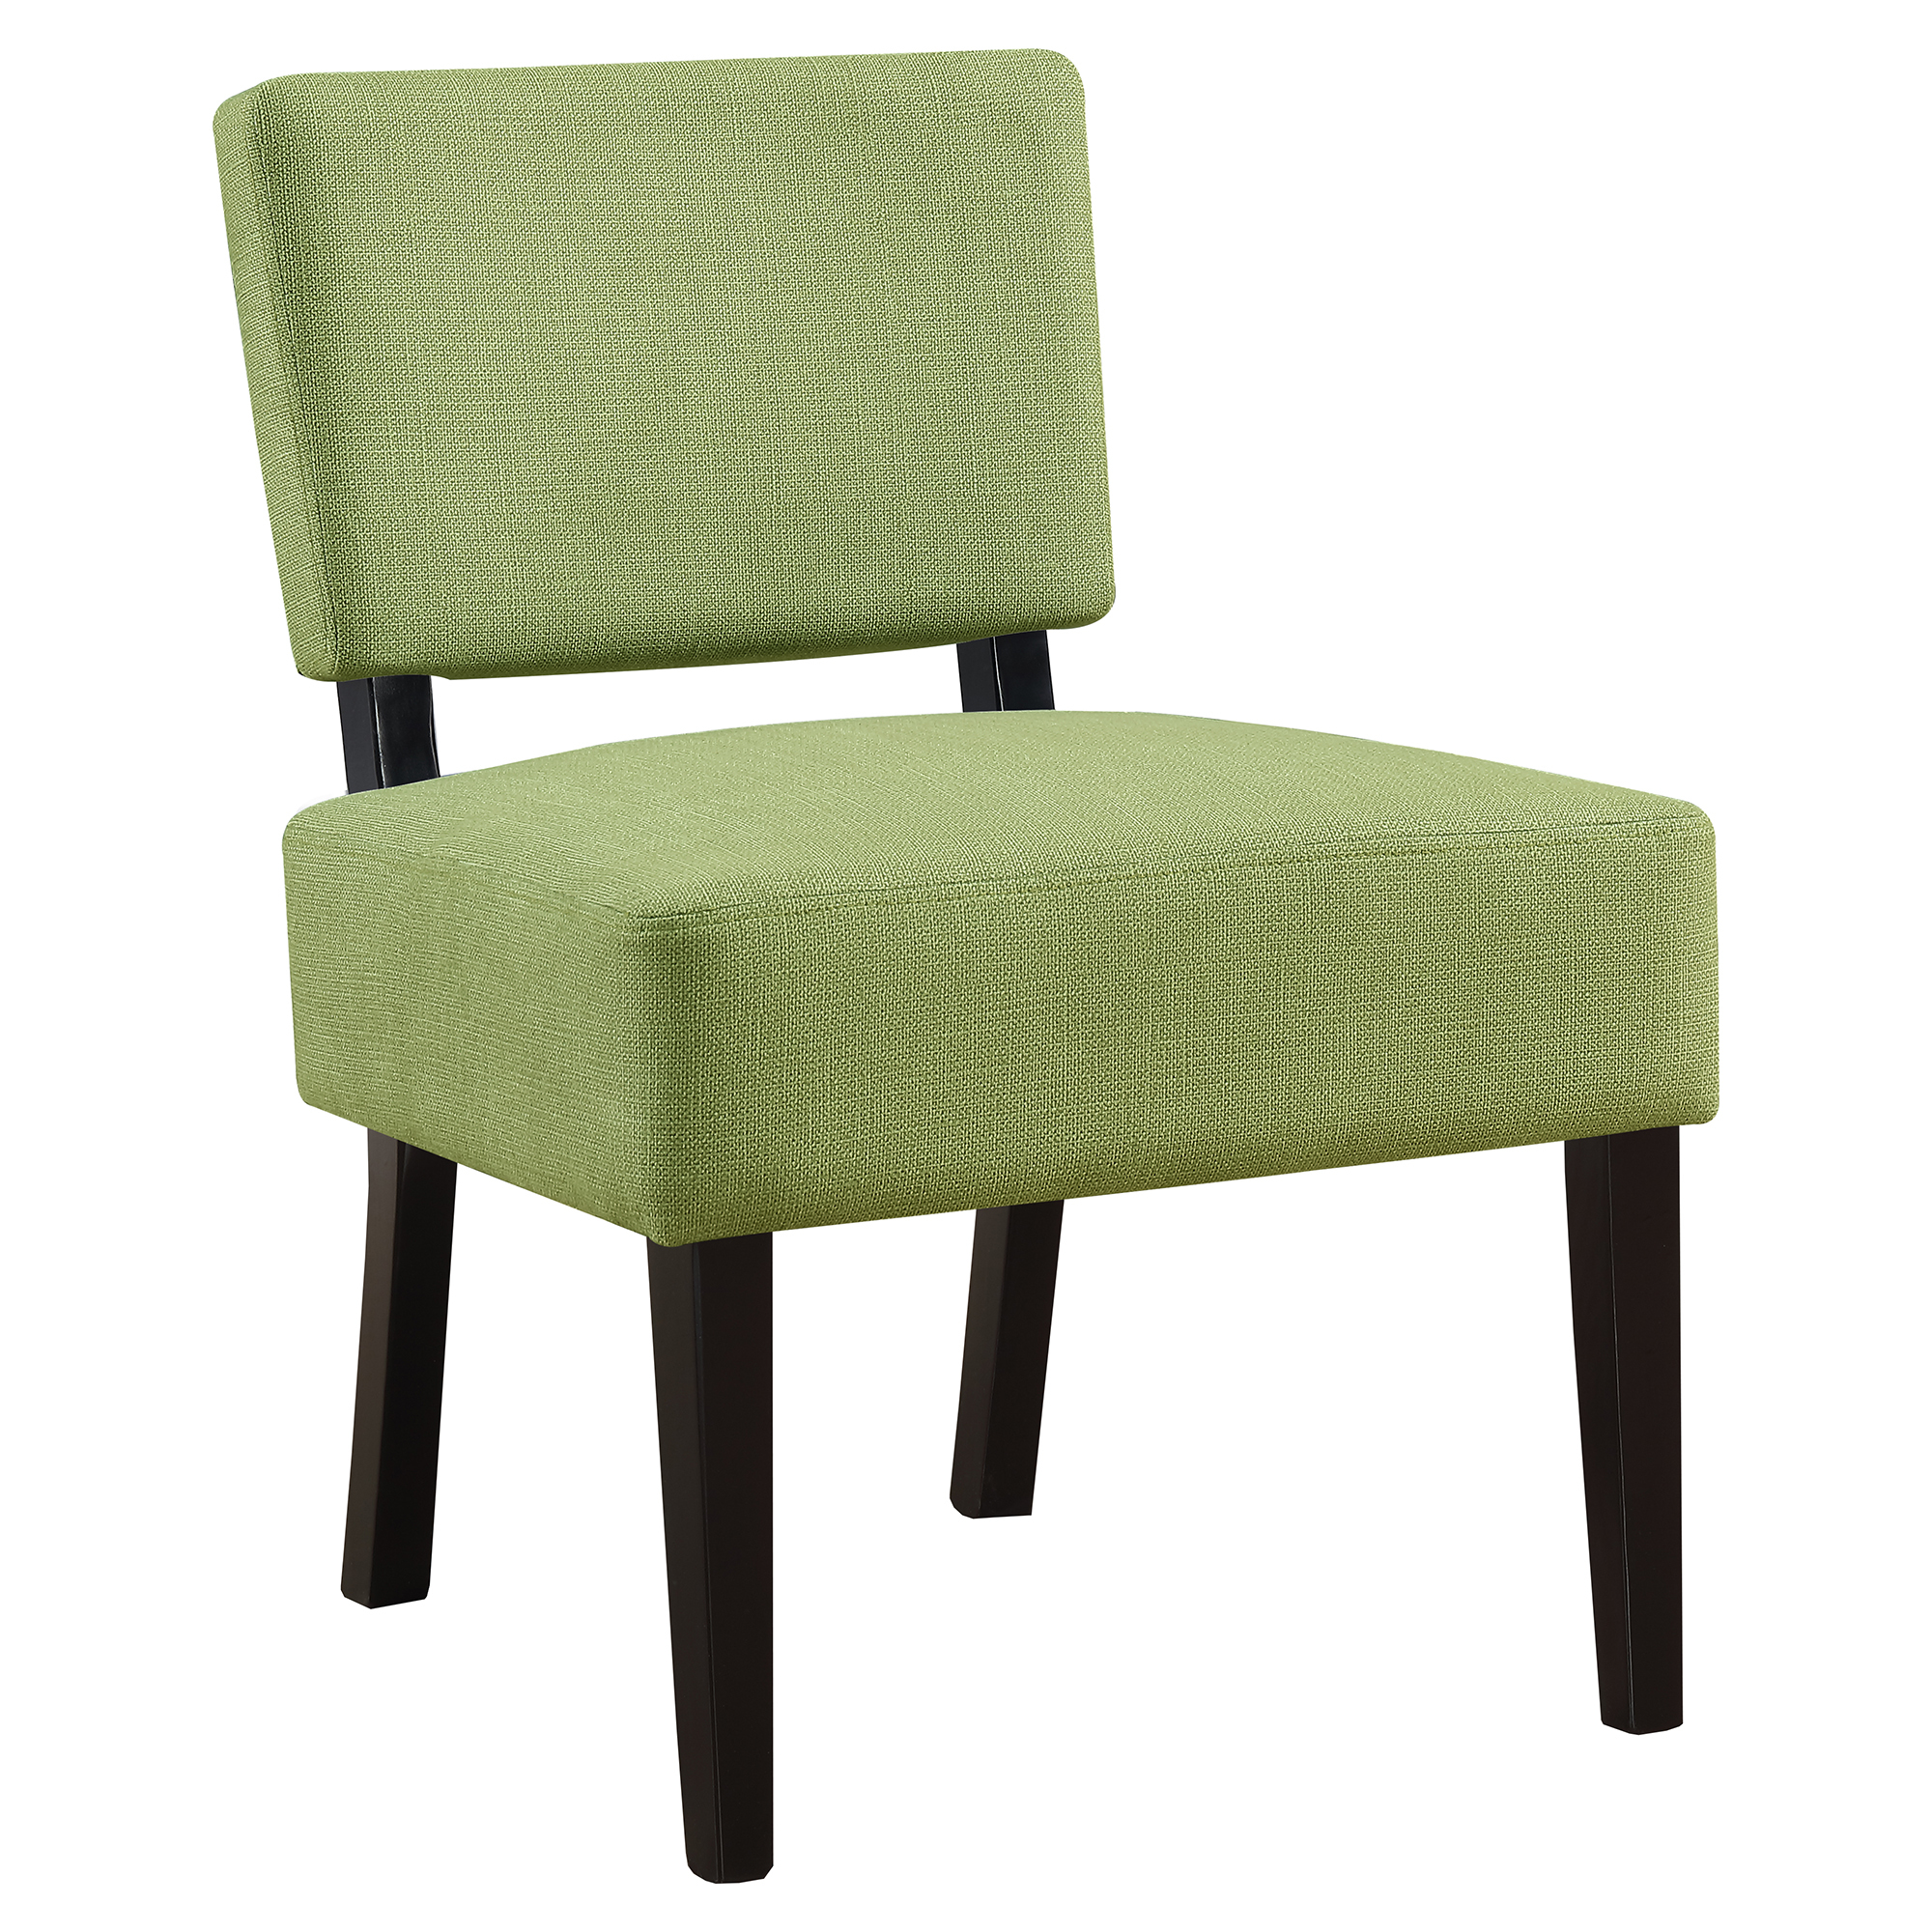 ACCENT CHAIR - LIME GREEN FABRIC